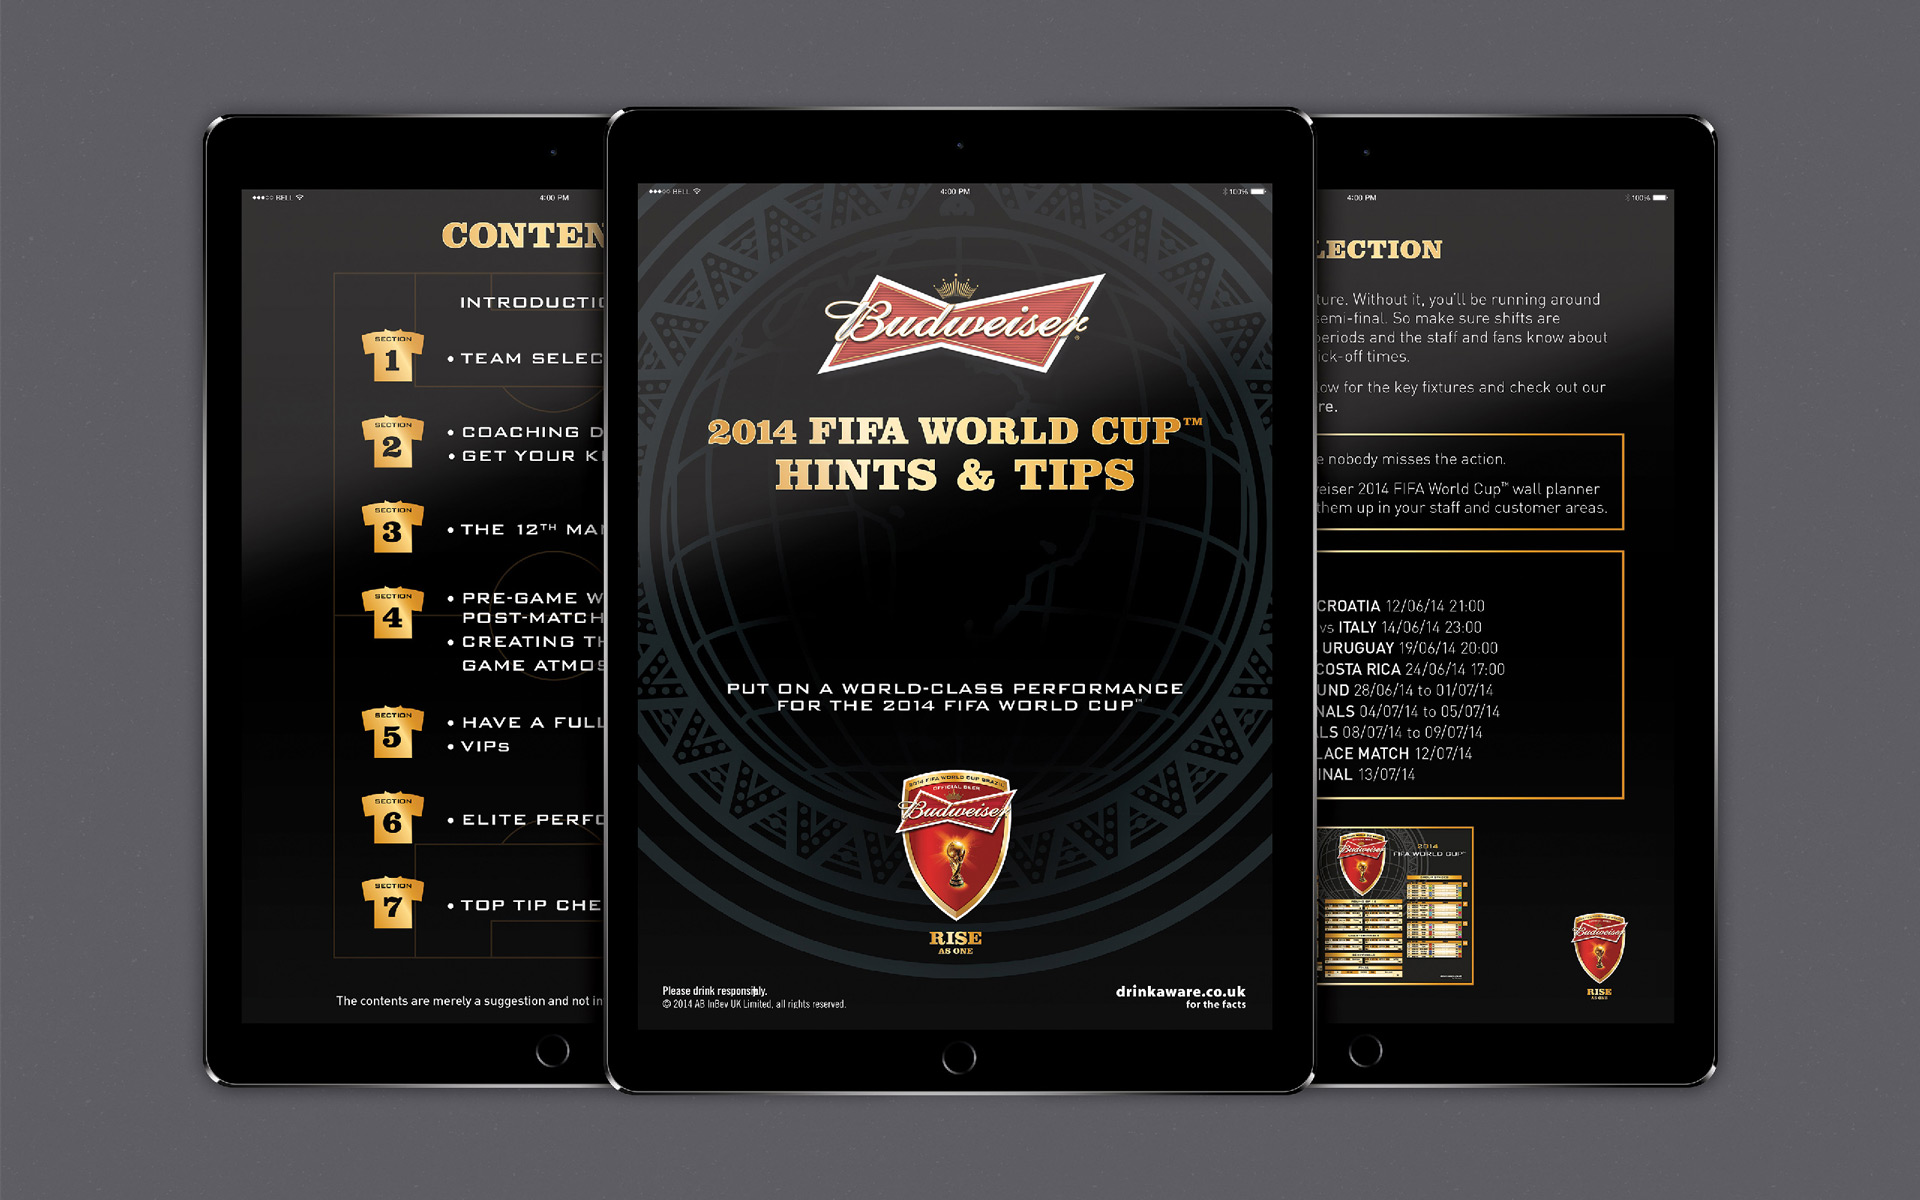 Budweiser - Hints and Tips (wholesale) ebook